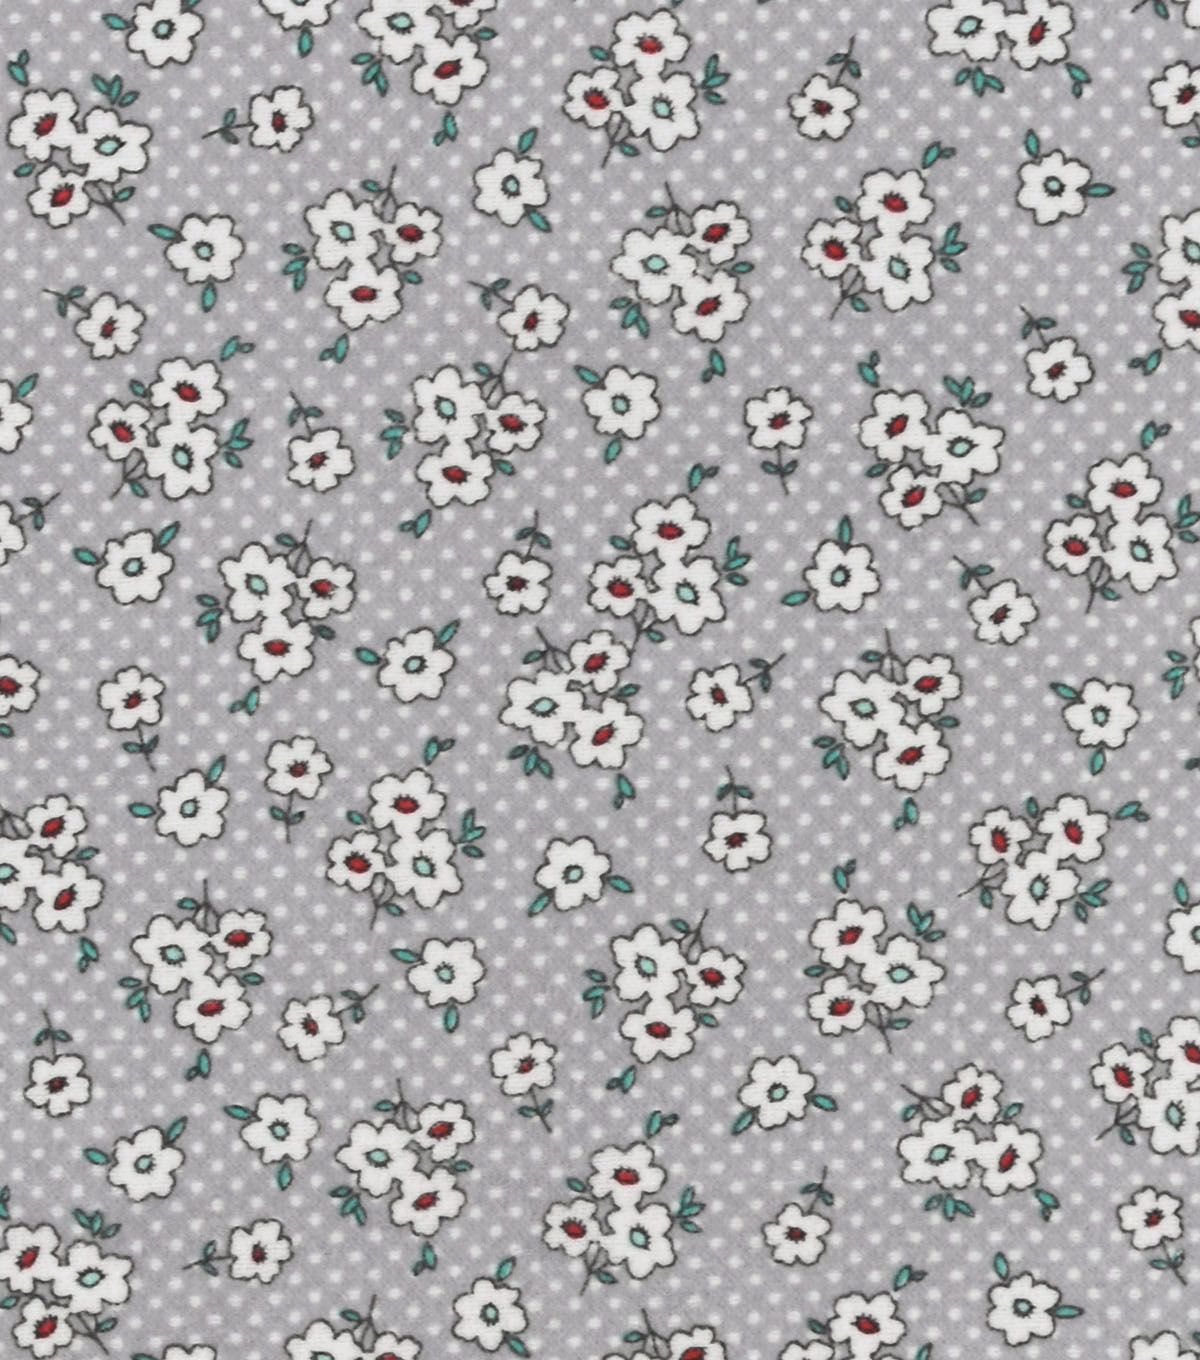 Snuggle Flannel Fabric -Gray Ditsy Floral